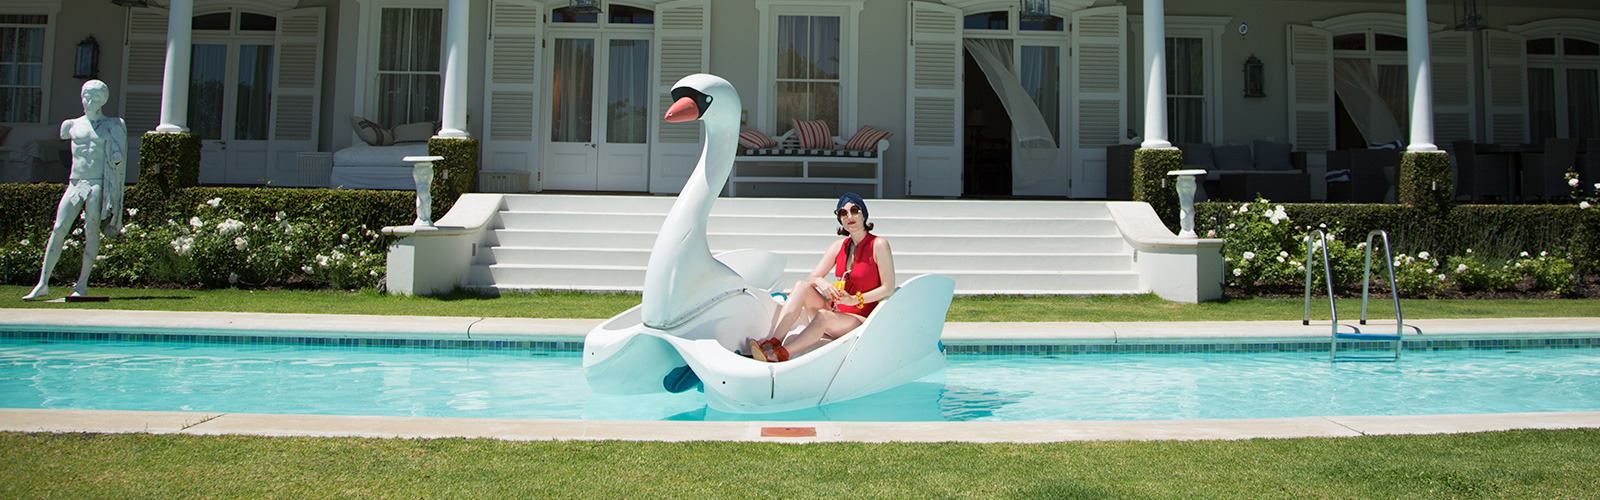 Woman sitting in a pool in a swan.